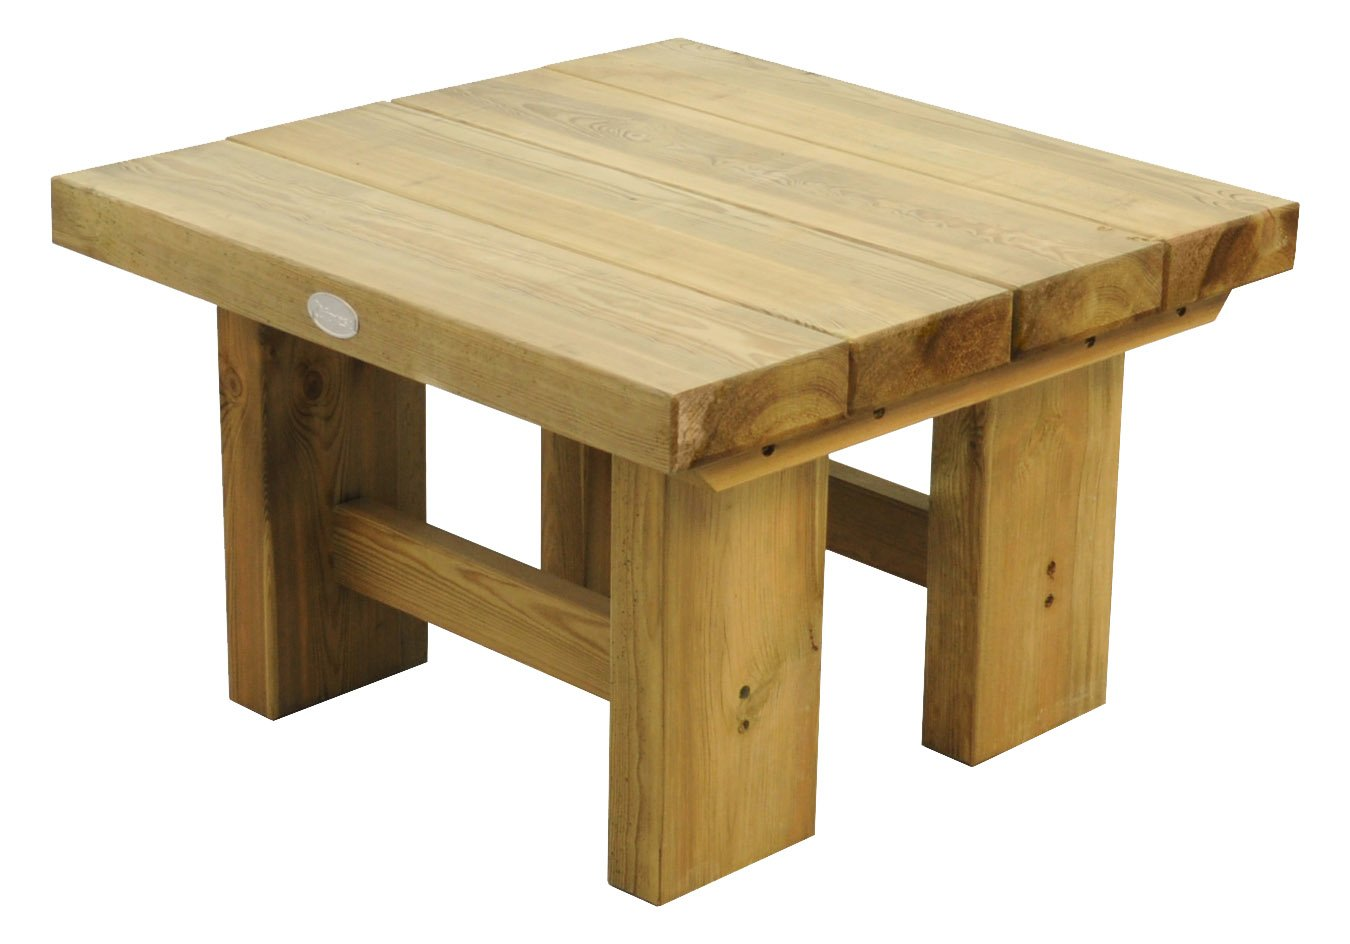 Forest Low Level Sleeper Table - 0.7m Forest Garden LSTAB07HD